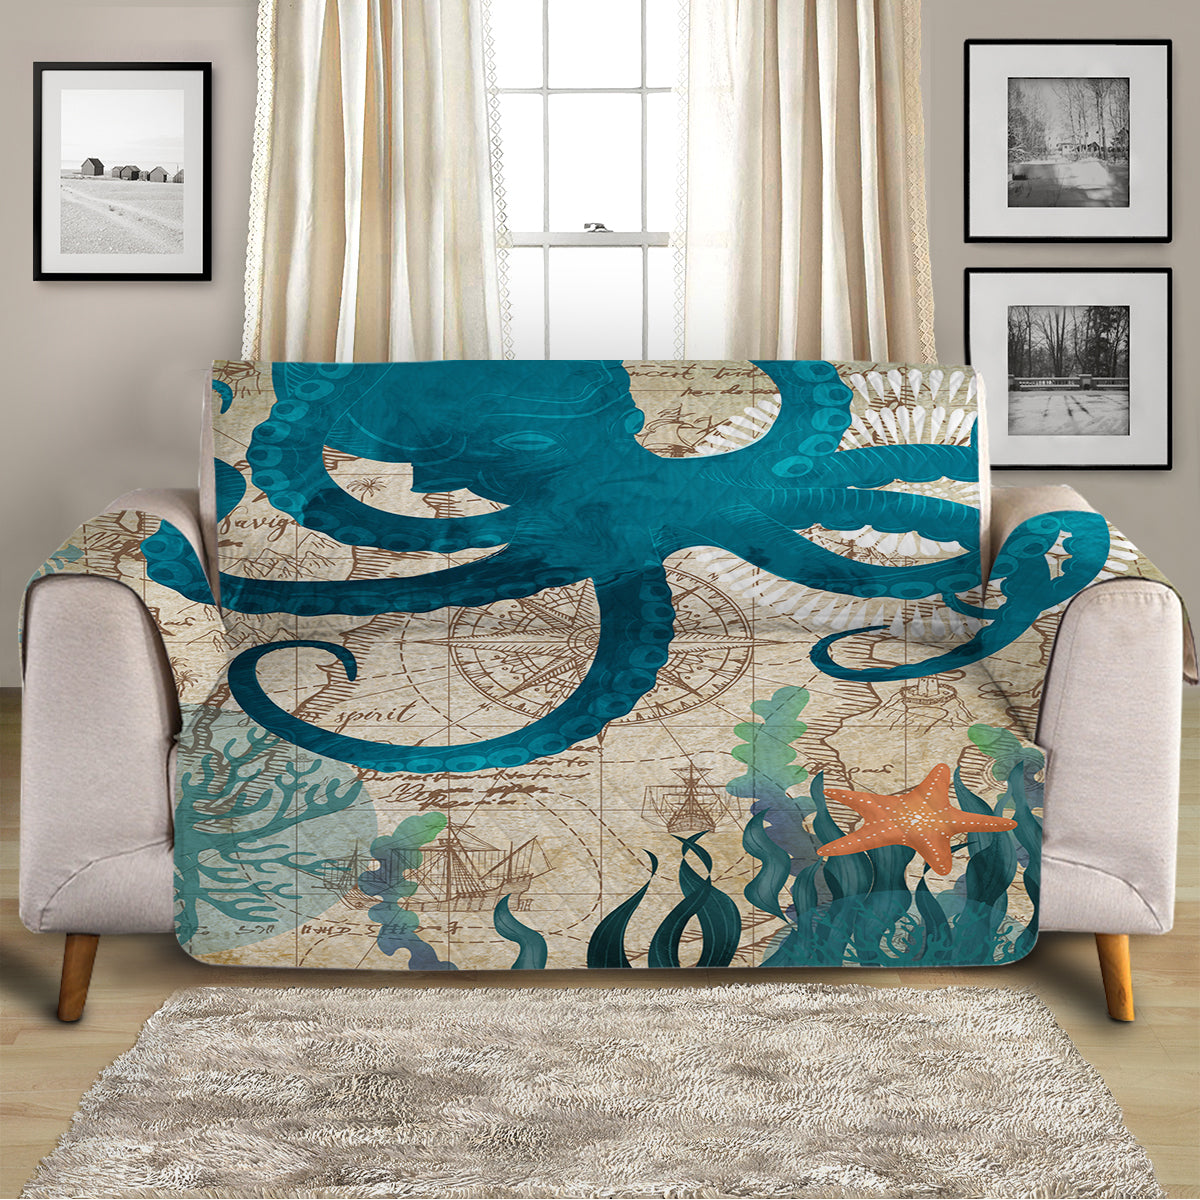 Octopus Love Sofa Cover